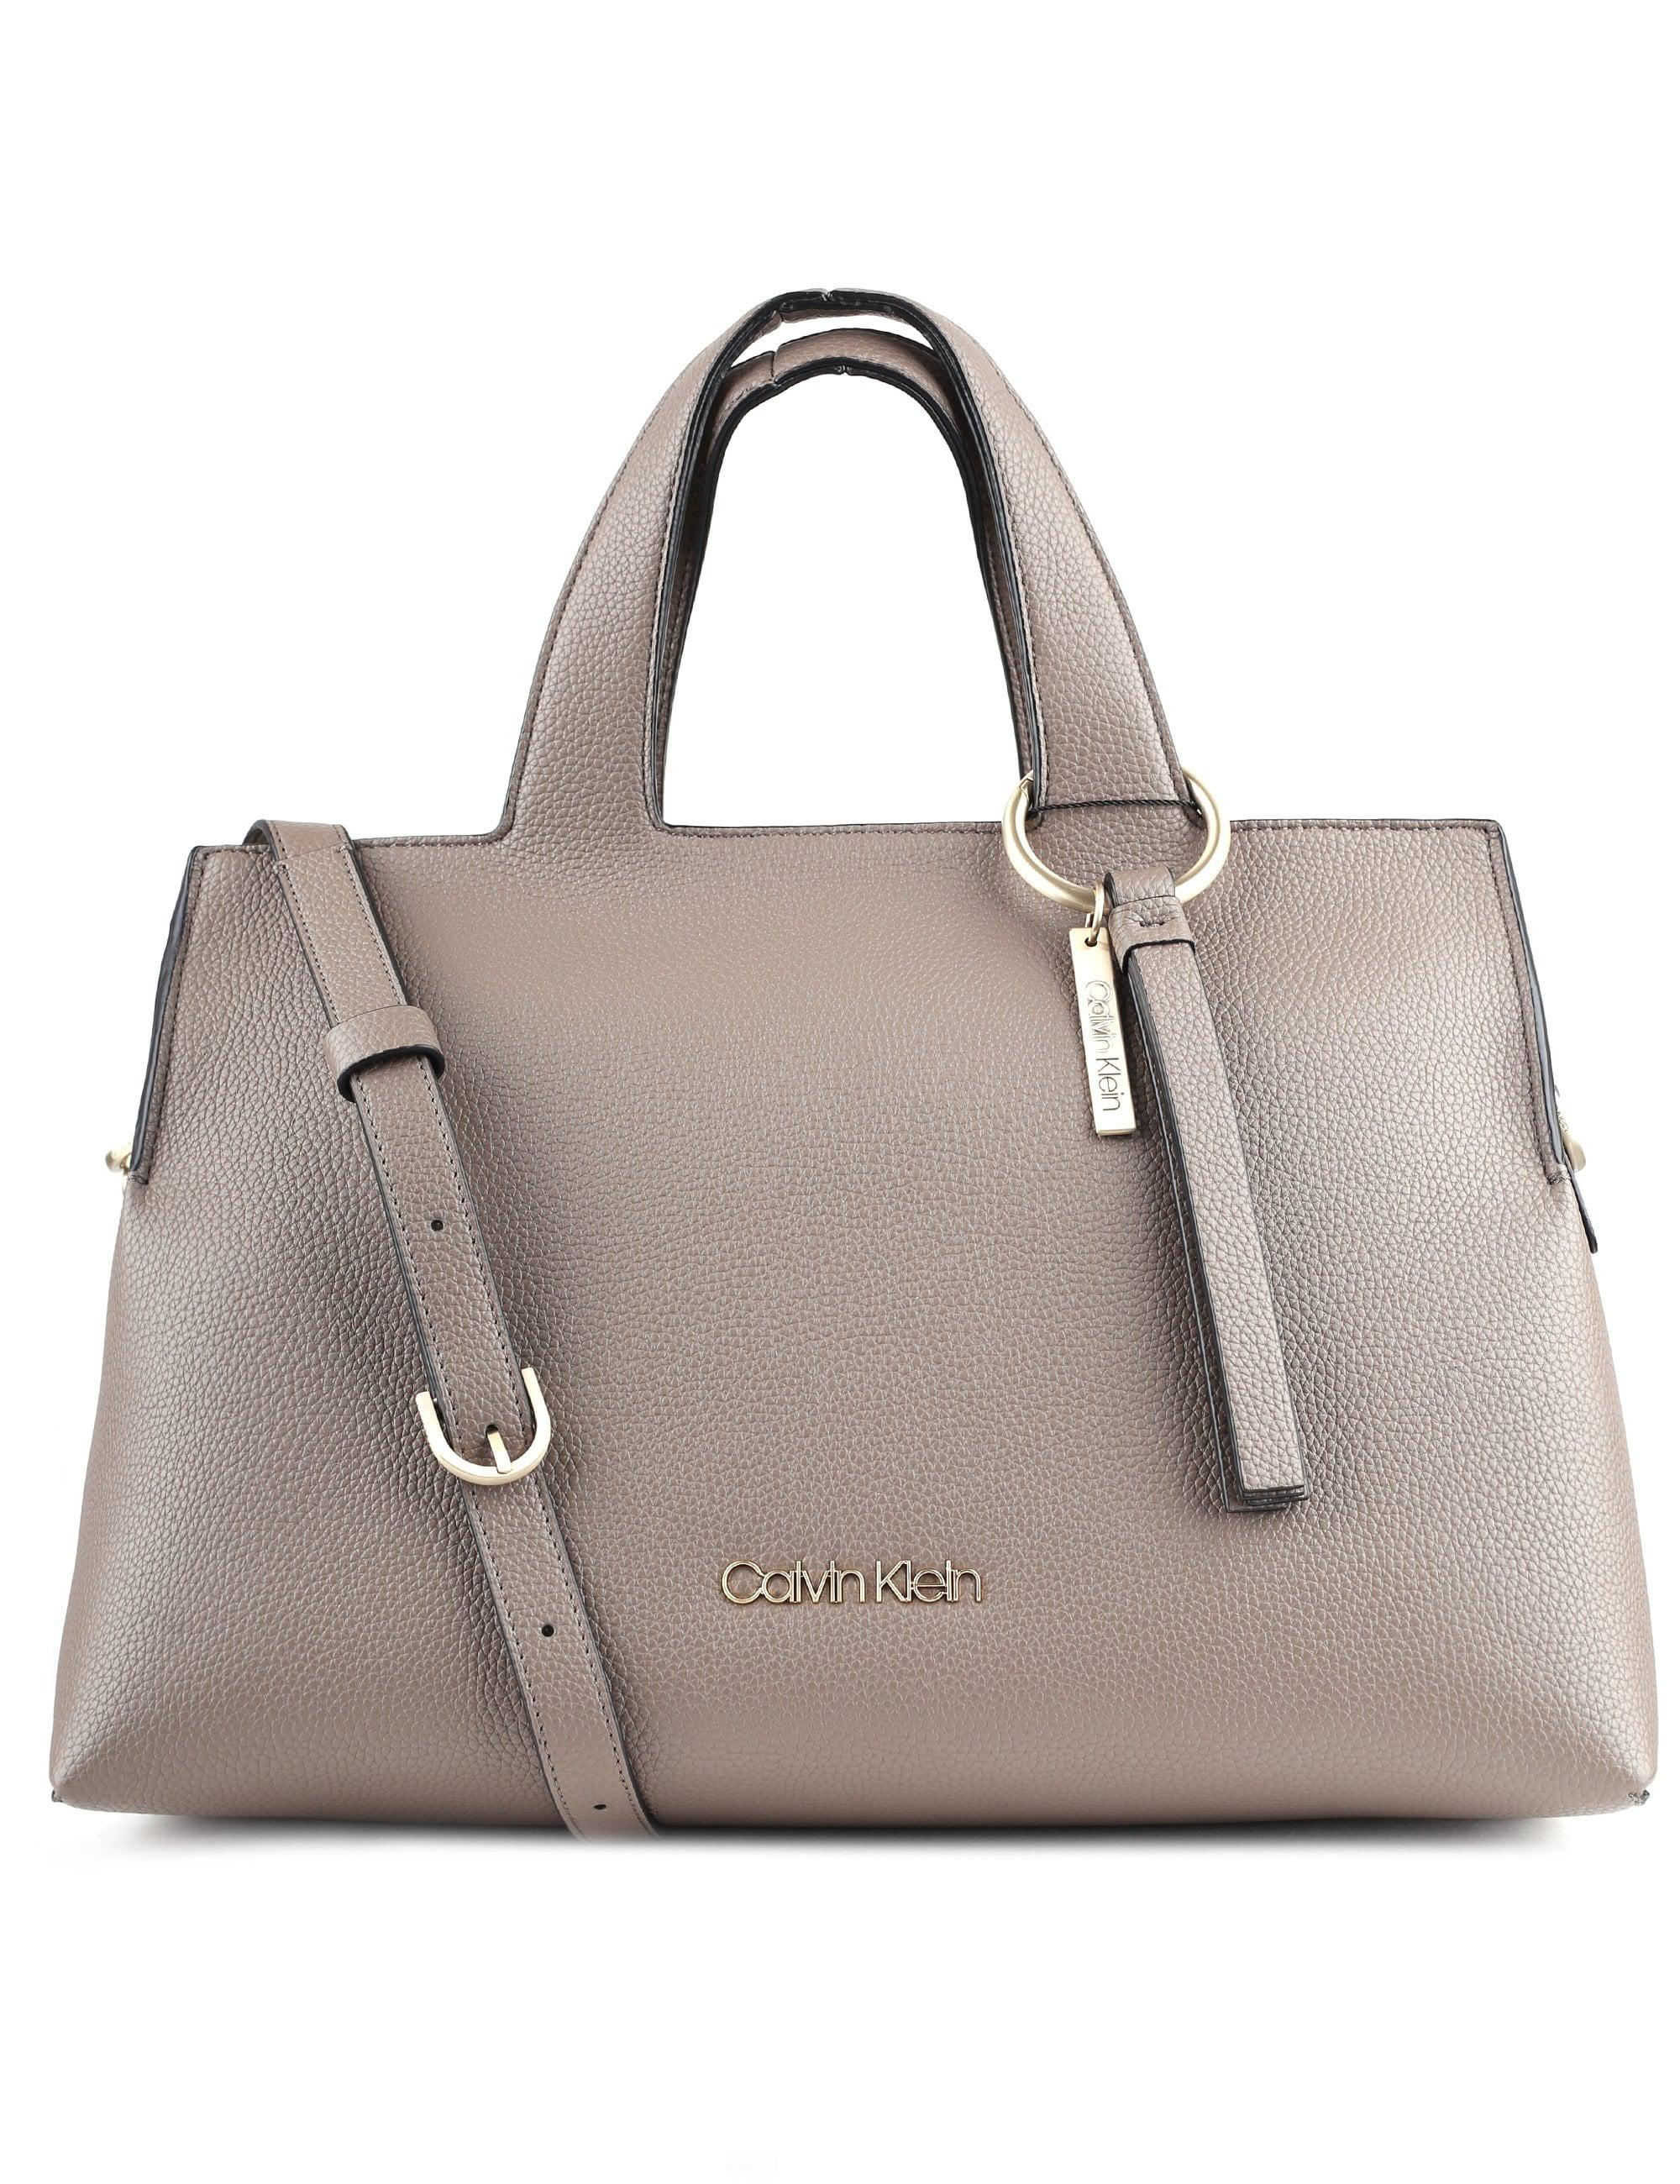 d1d0dcd3787 Calvin Klein Neat Large Tote Bag - Lyst